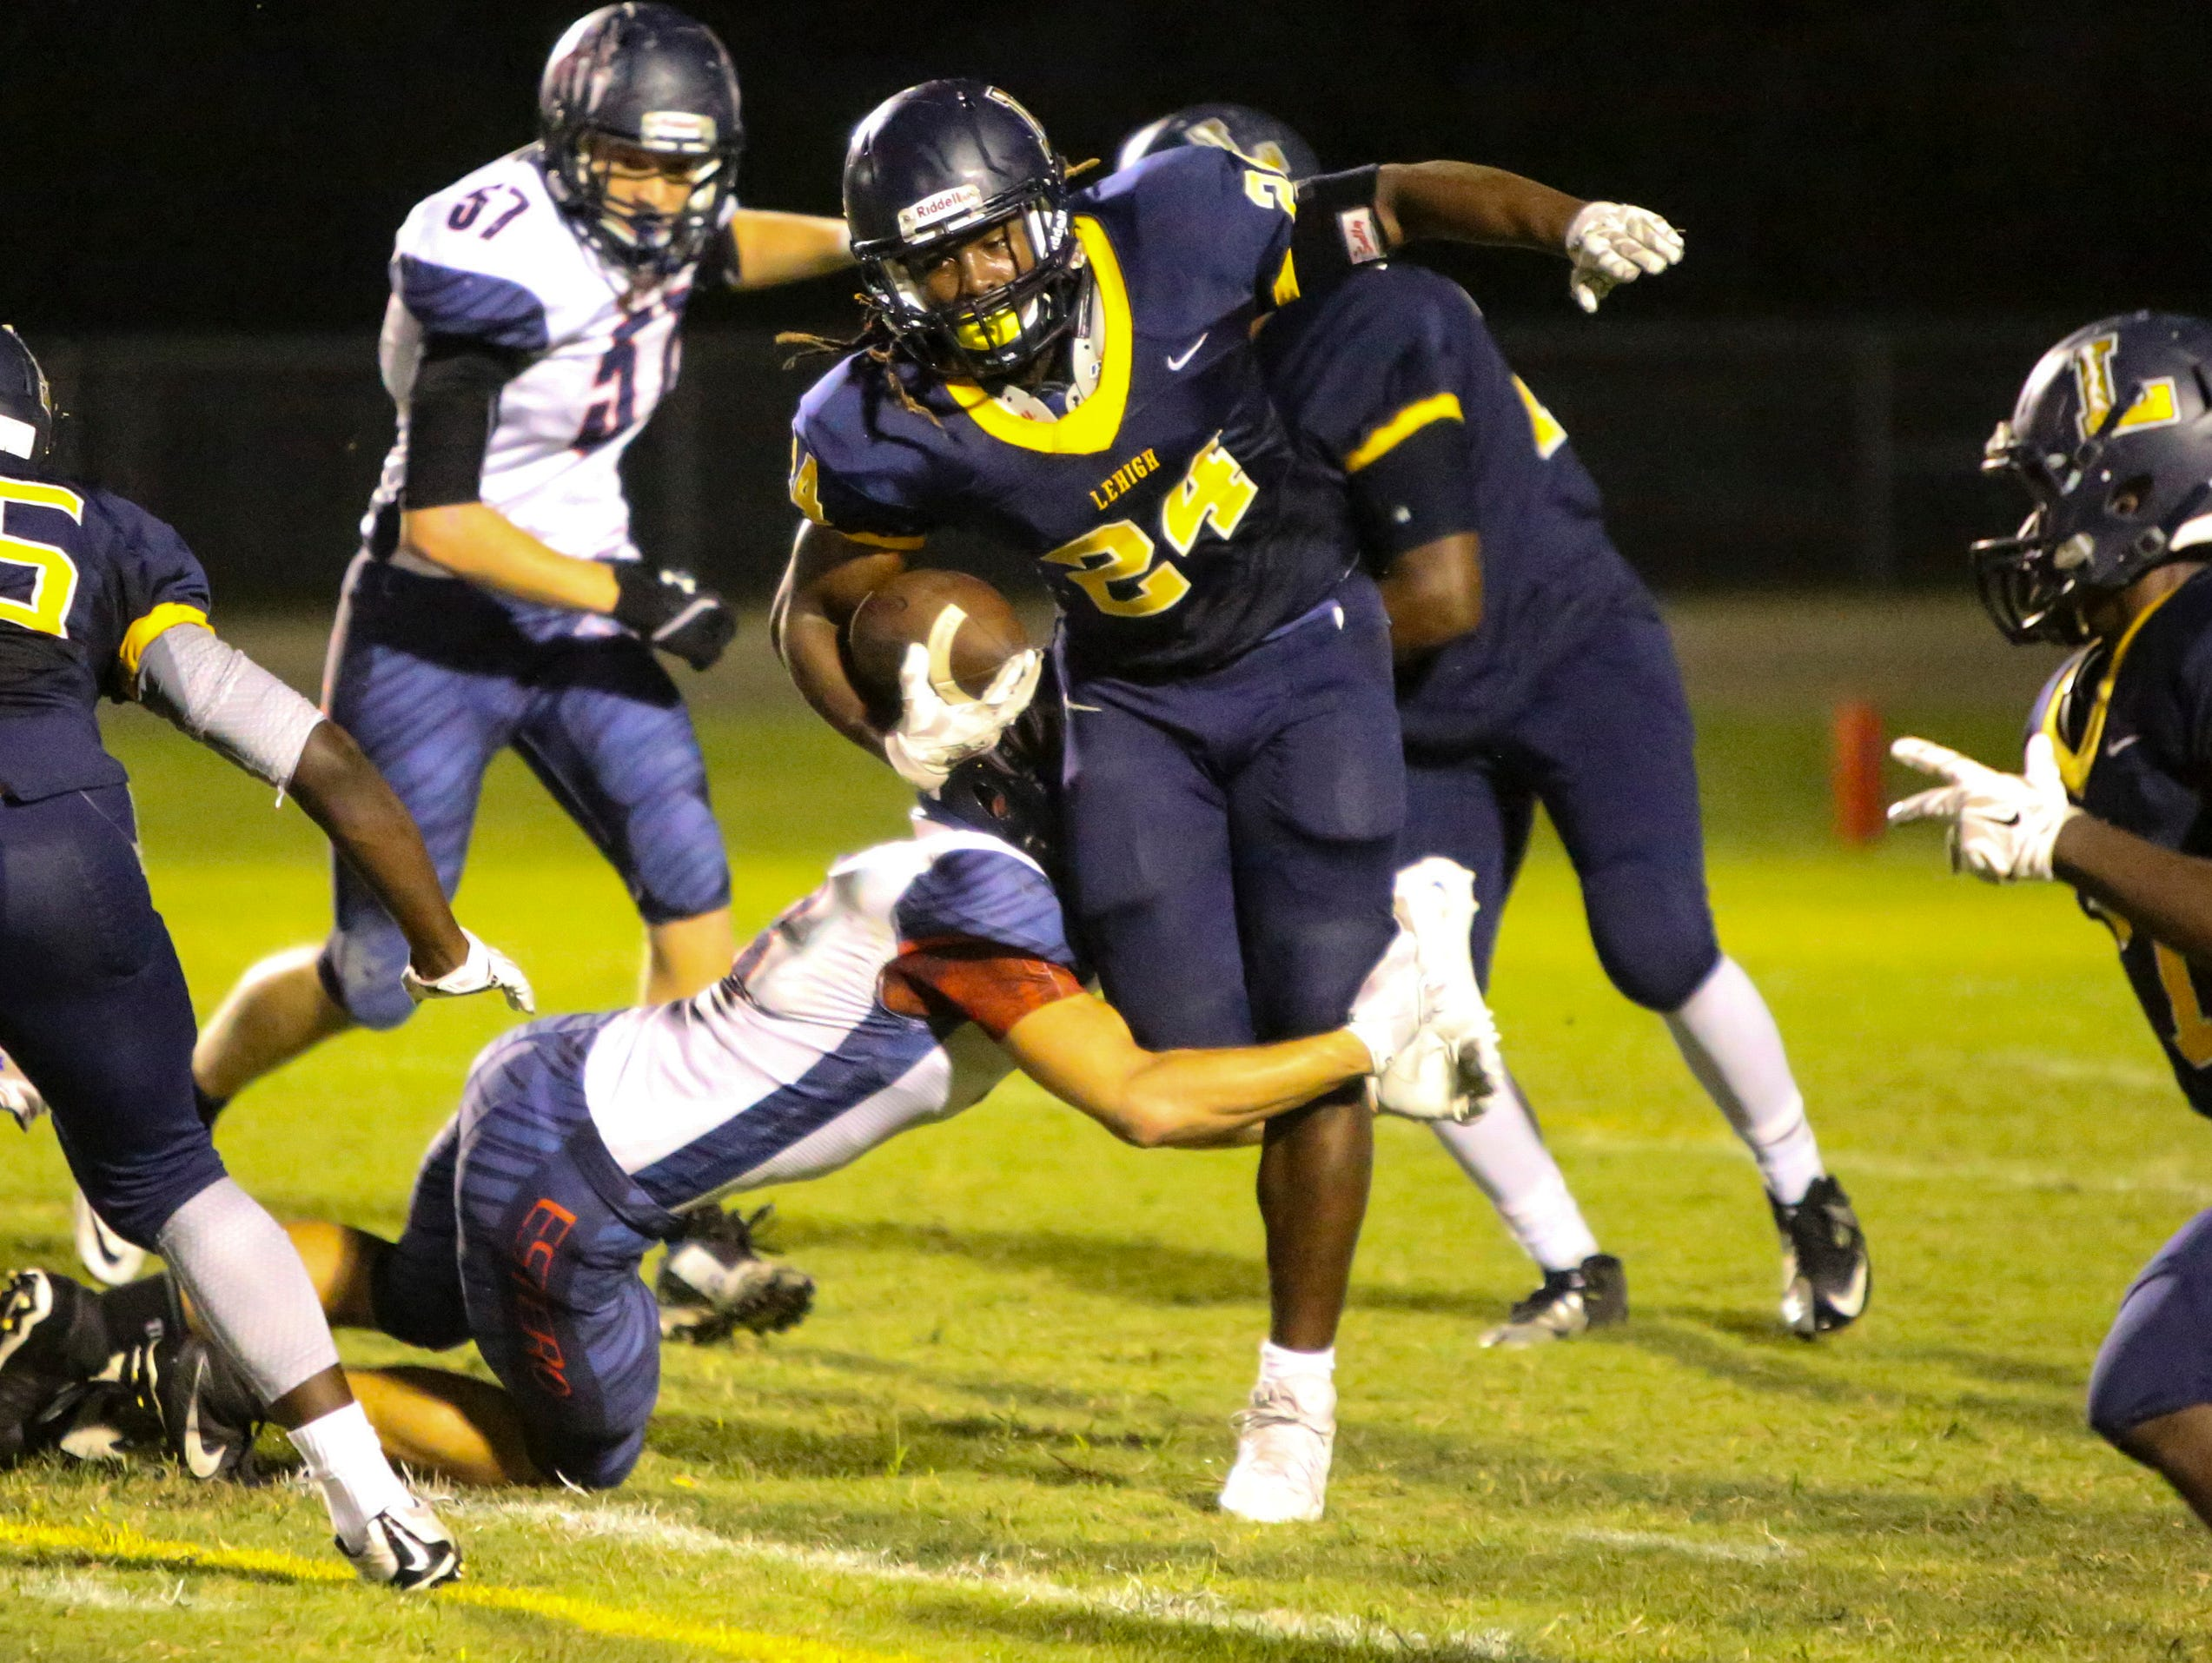 Lehigh's Chris Curry gains yards for the lightning early in their game against Estero. Estero went on to win 21-7.